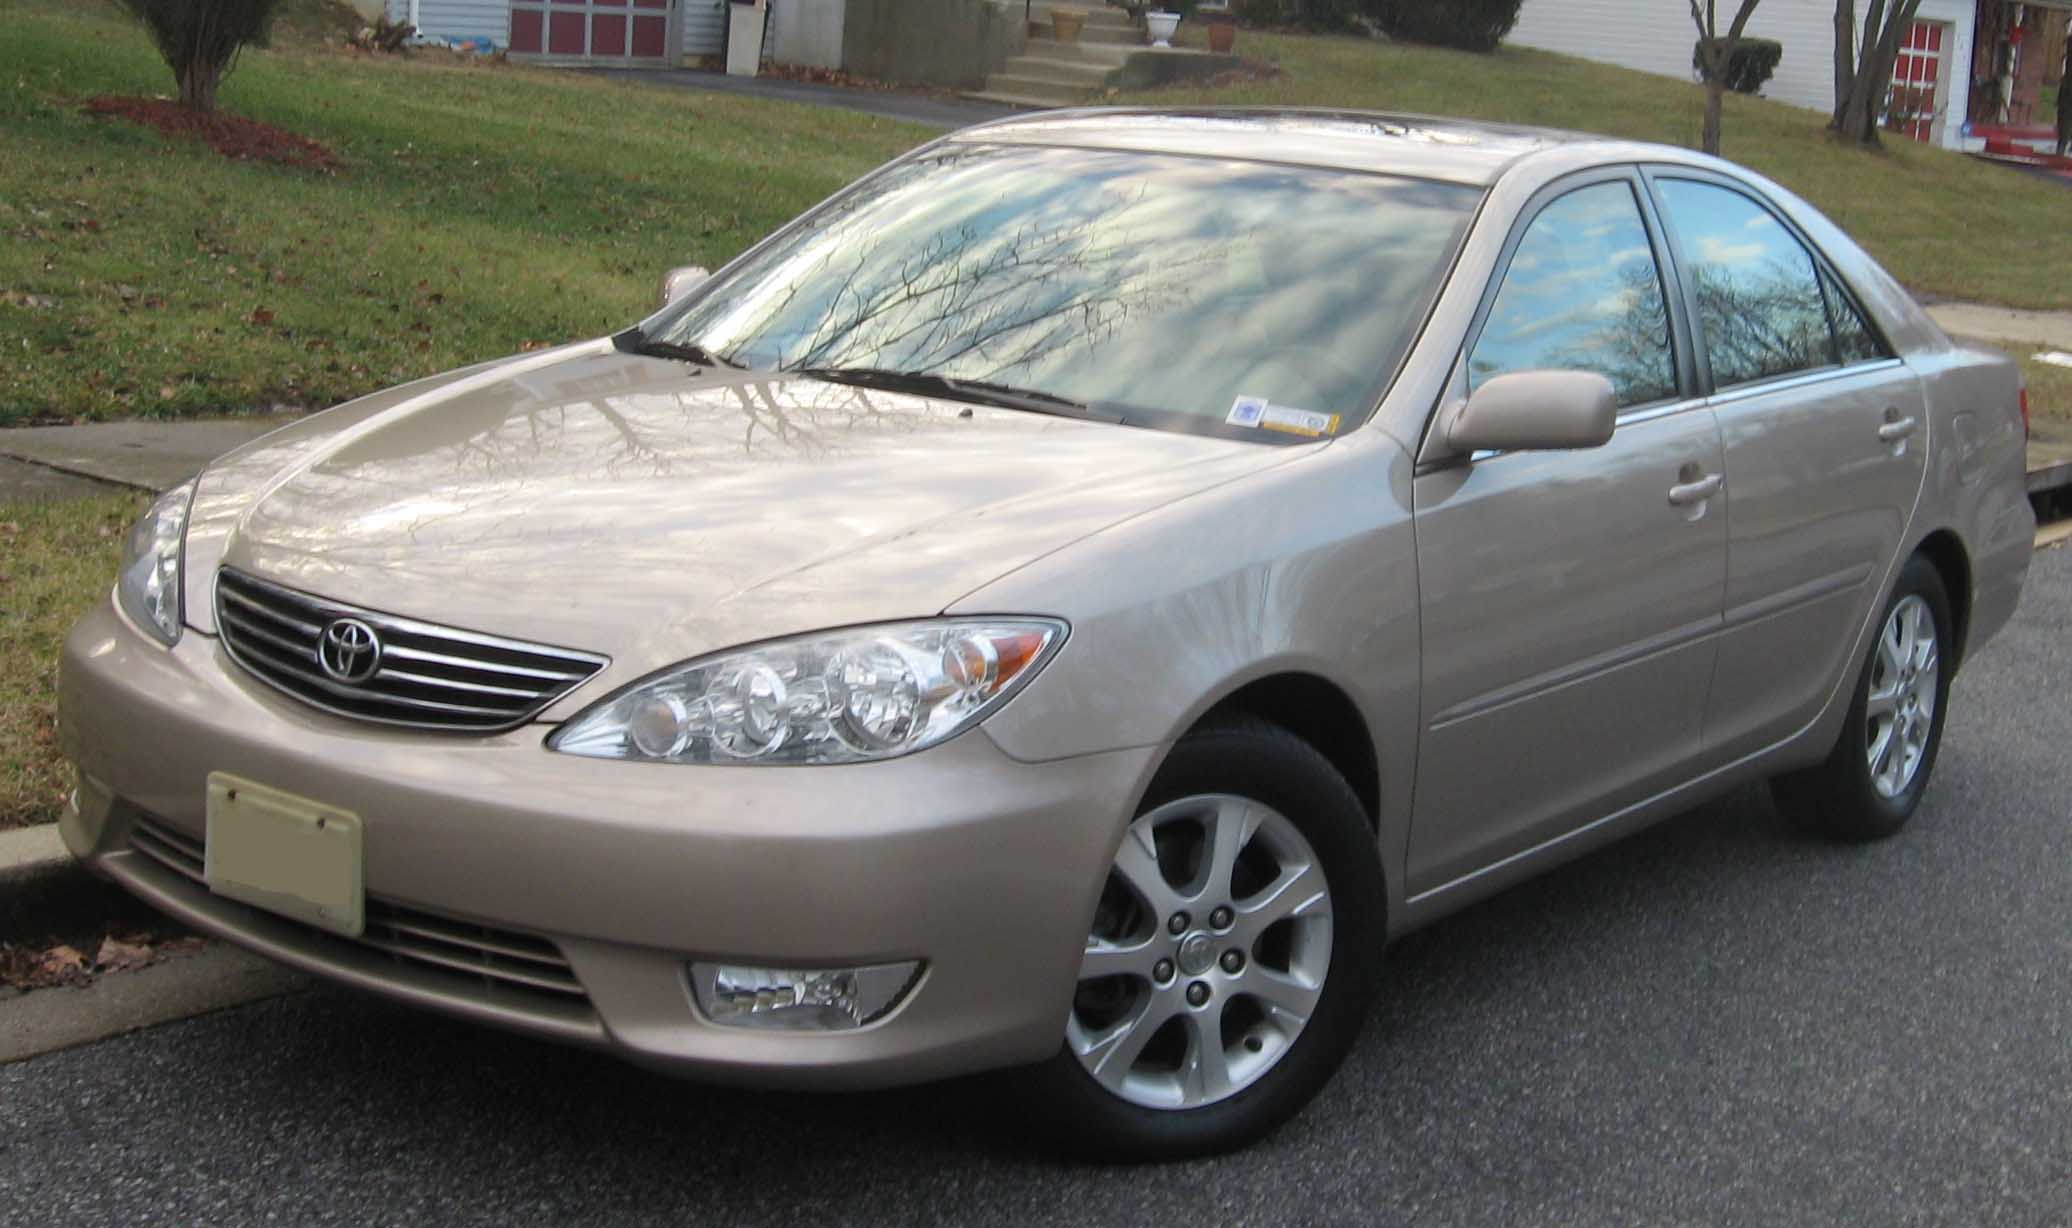 2005 toyota camry information and photos momentcar. Black Bedroom Furniture Sets. Home Design Ideas